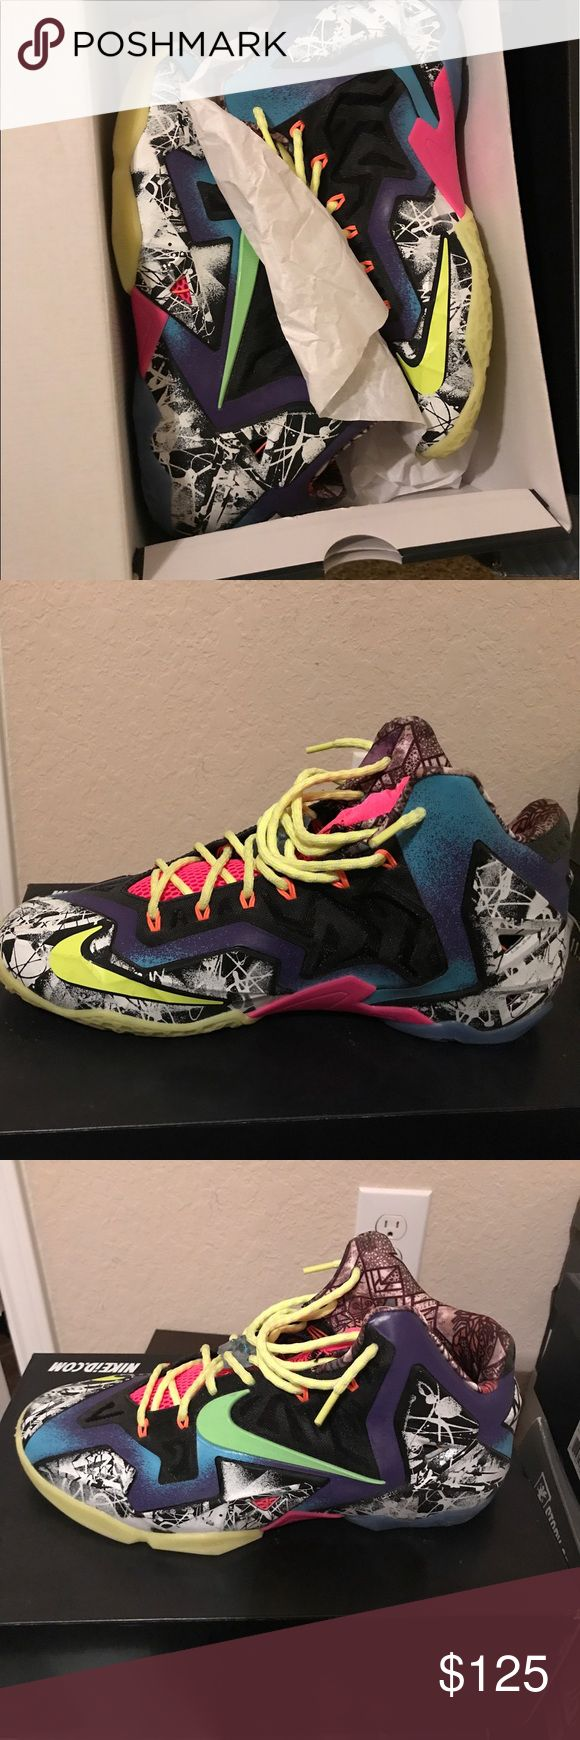 """2014 what the Lebron 11's 2014 edition of the lebron 11's with the """"what the lebron"""" color way. Piece of every lebron shoe from 2014 jumbled into one shoe. Lightly worn and factory laced Shoes Athletic Shoes"""